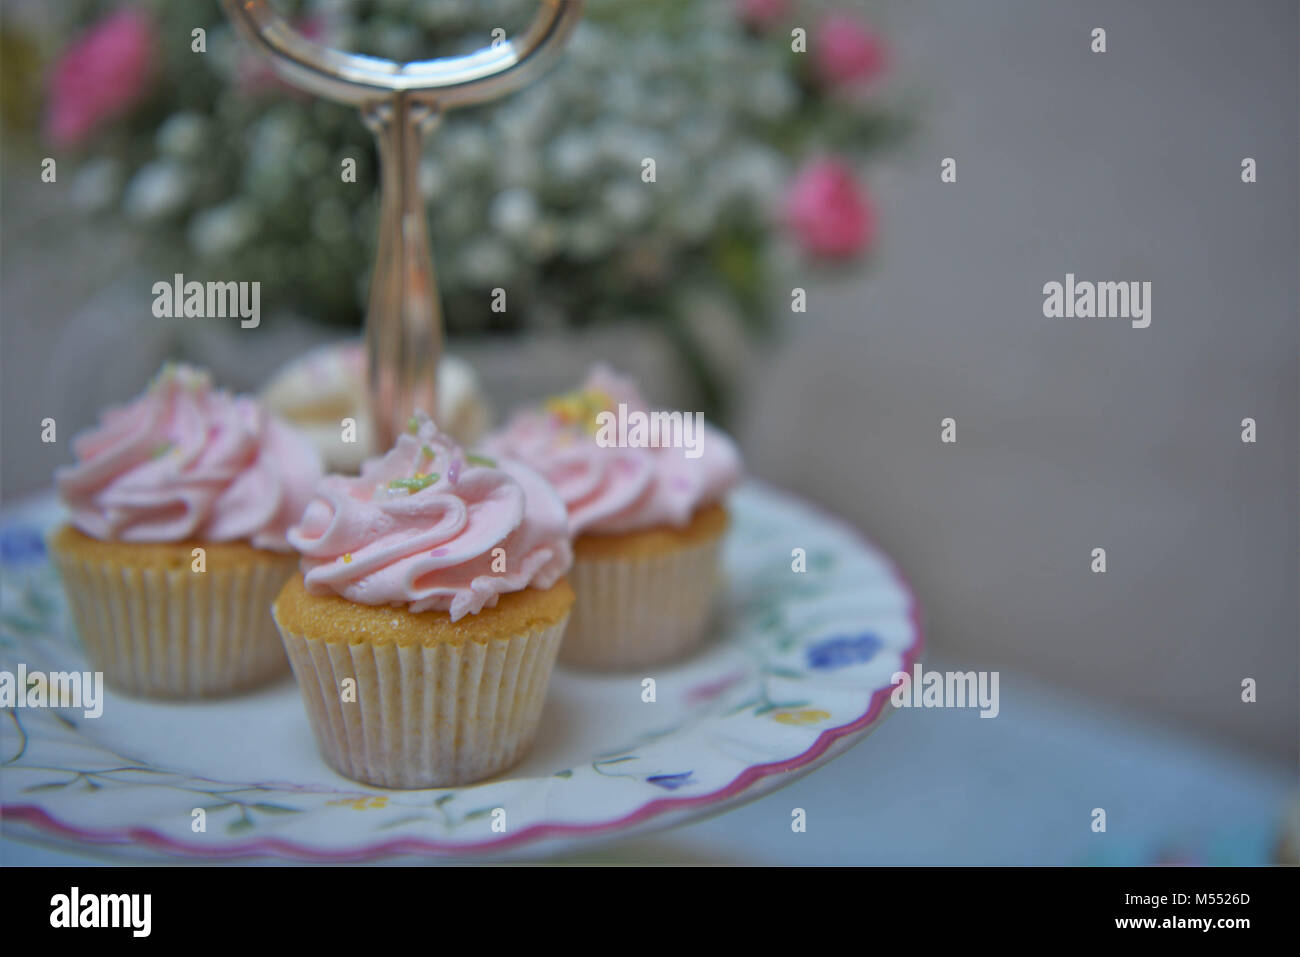 Food Of Cupcakes On A Vintage Cake Stand With Fresh Flowers Stock